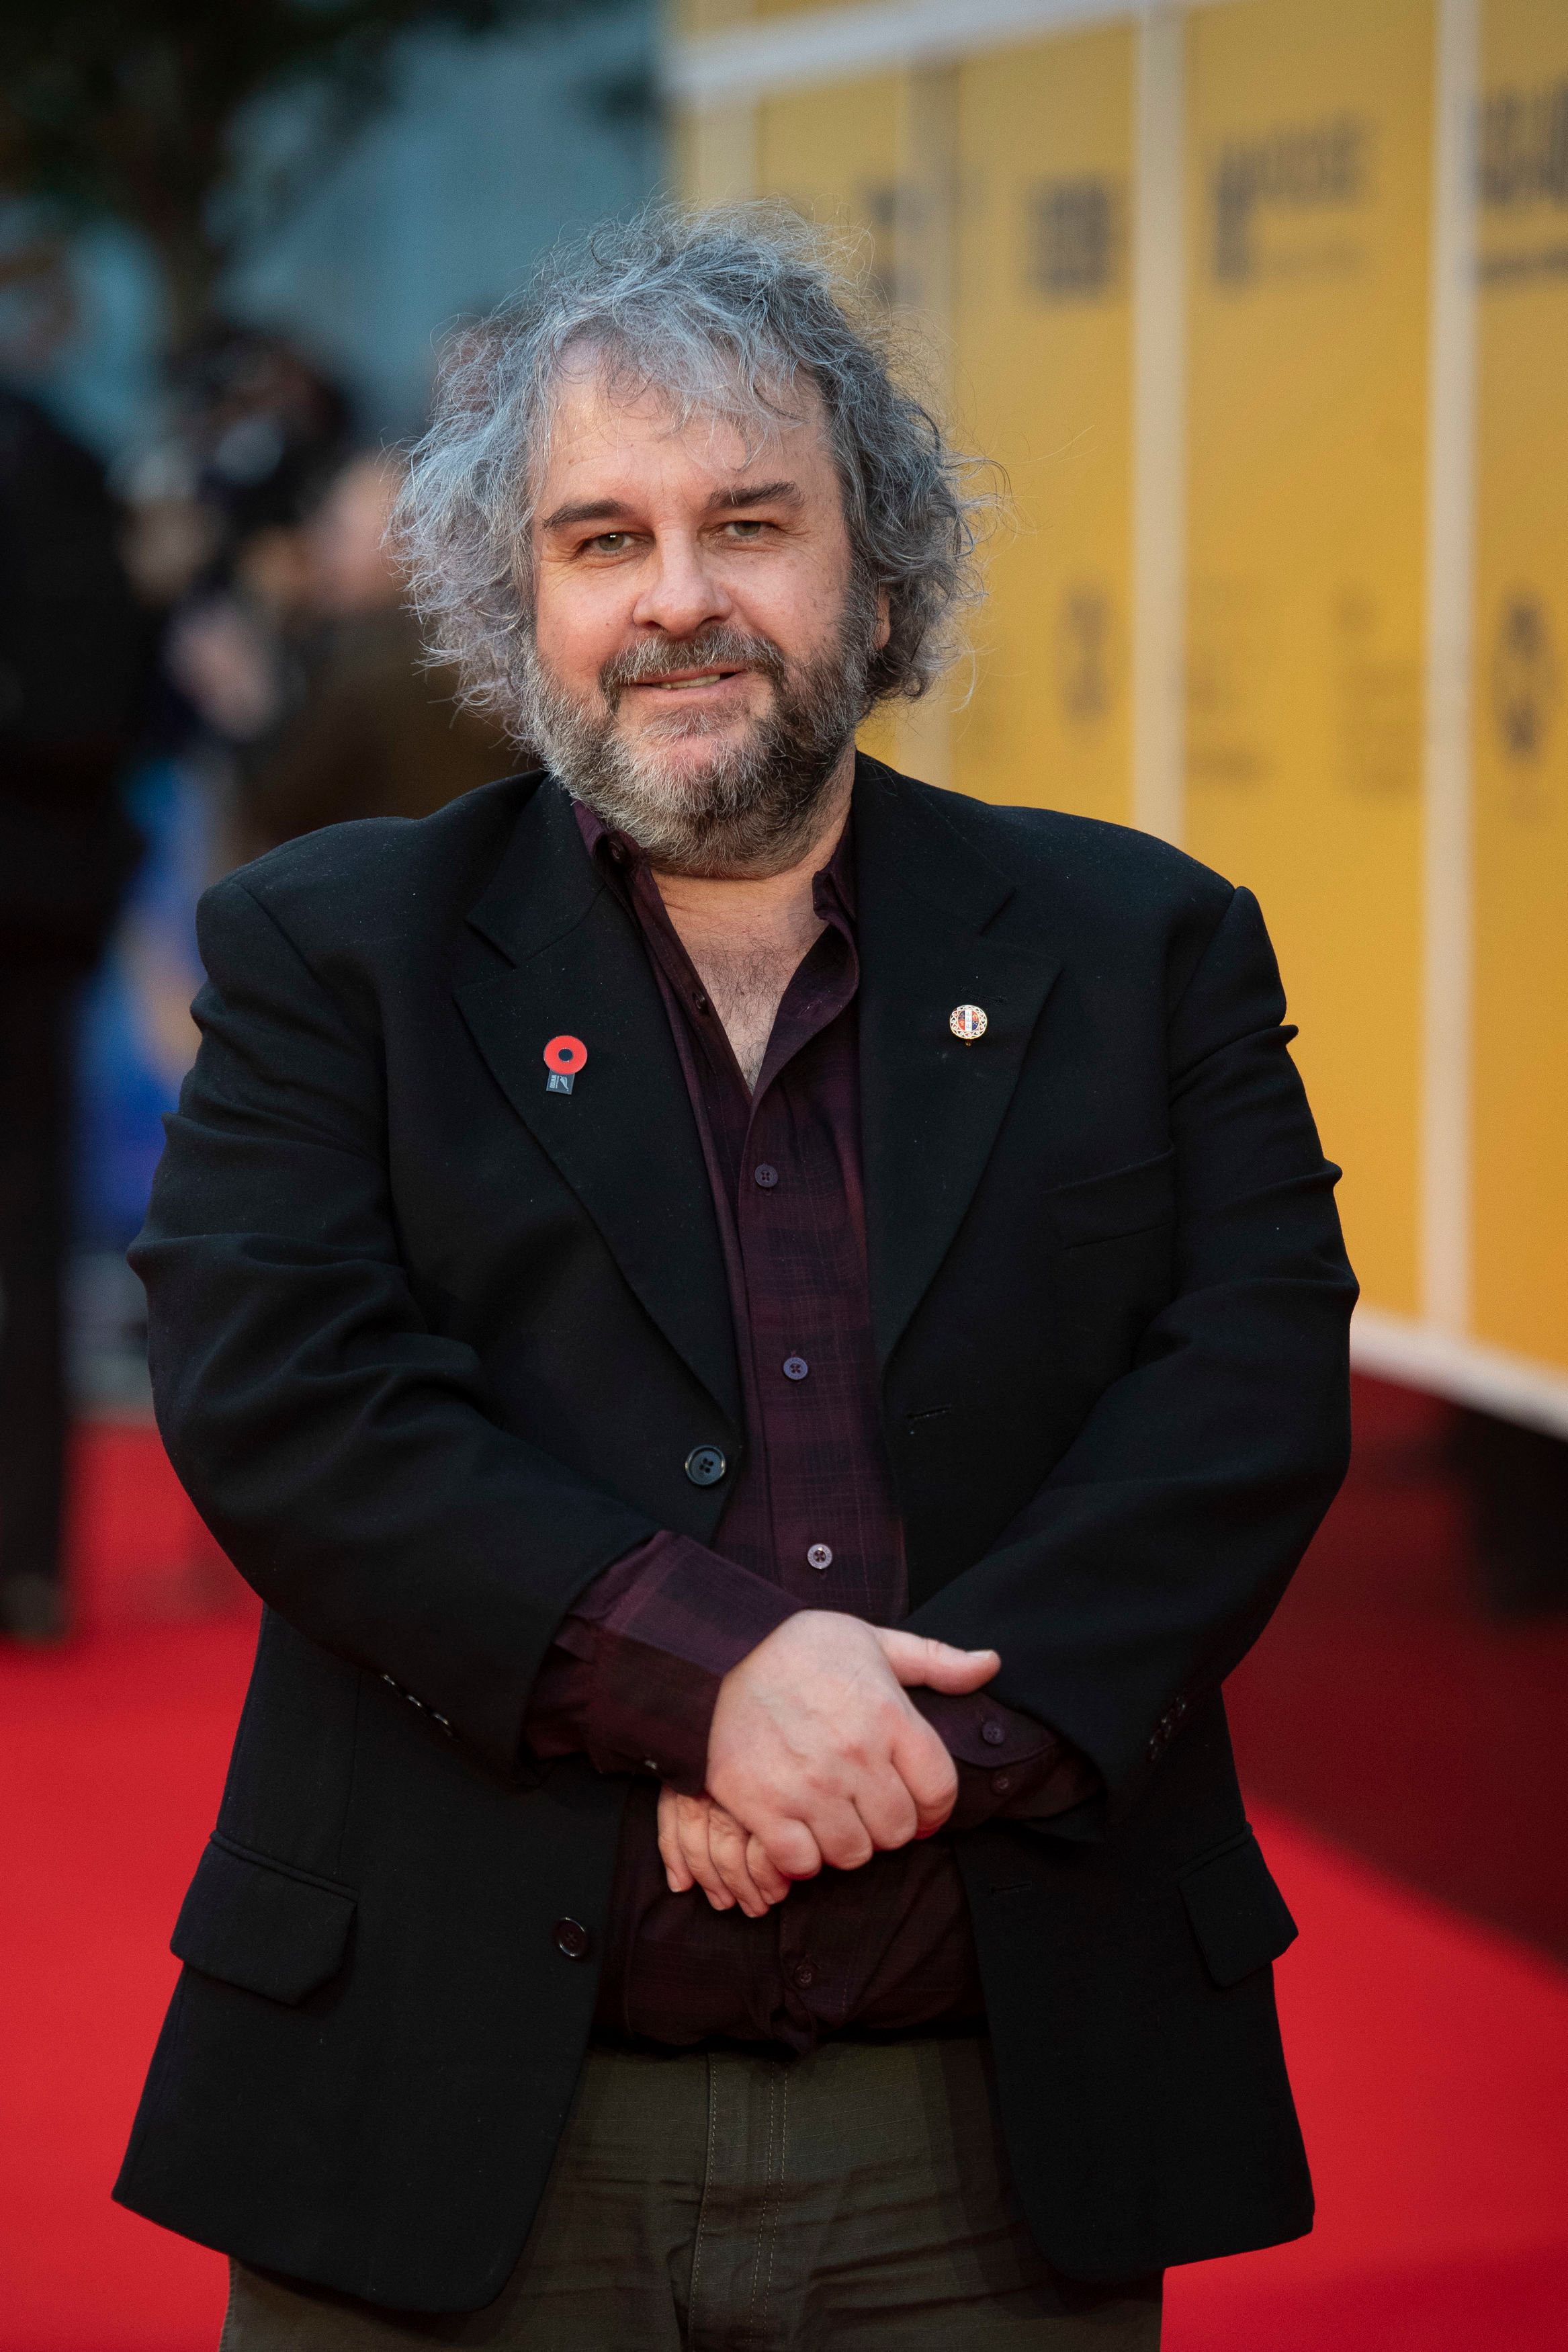 They Shall Not Grow Old: Peter Jackson WW1 Documentary To Make TV Debut On Armistice